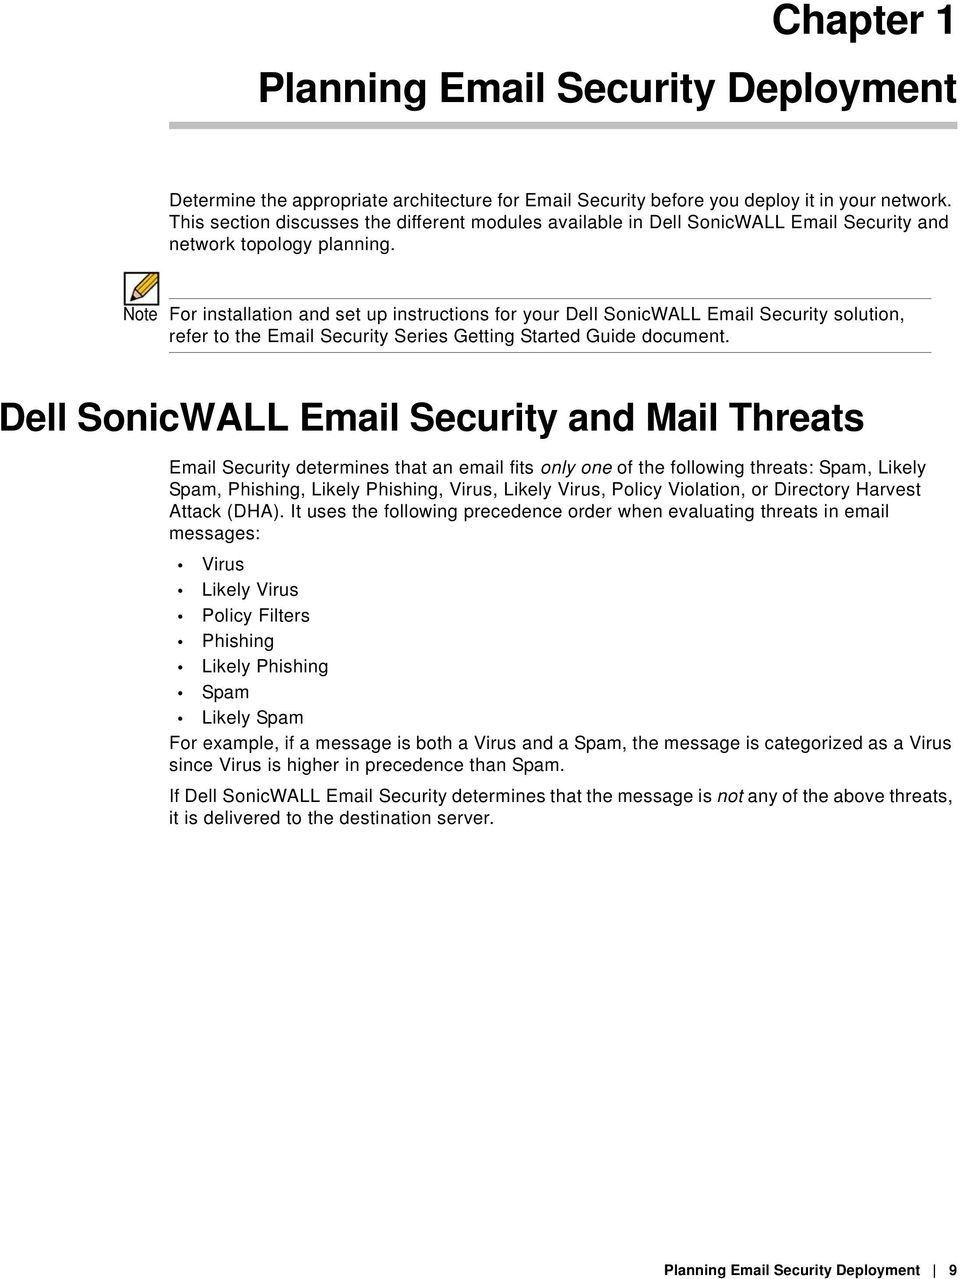 Note For installation and set up instructions for your Dell SonicWALL Email Security solution, refer to the Email Security Series Getting Started Guide document.